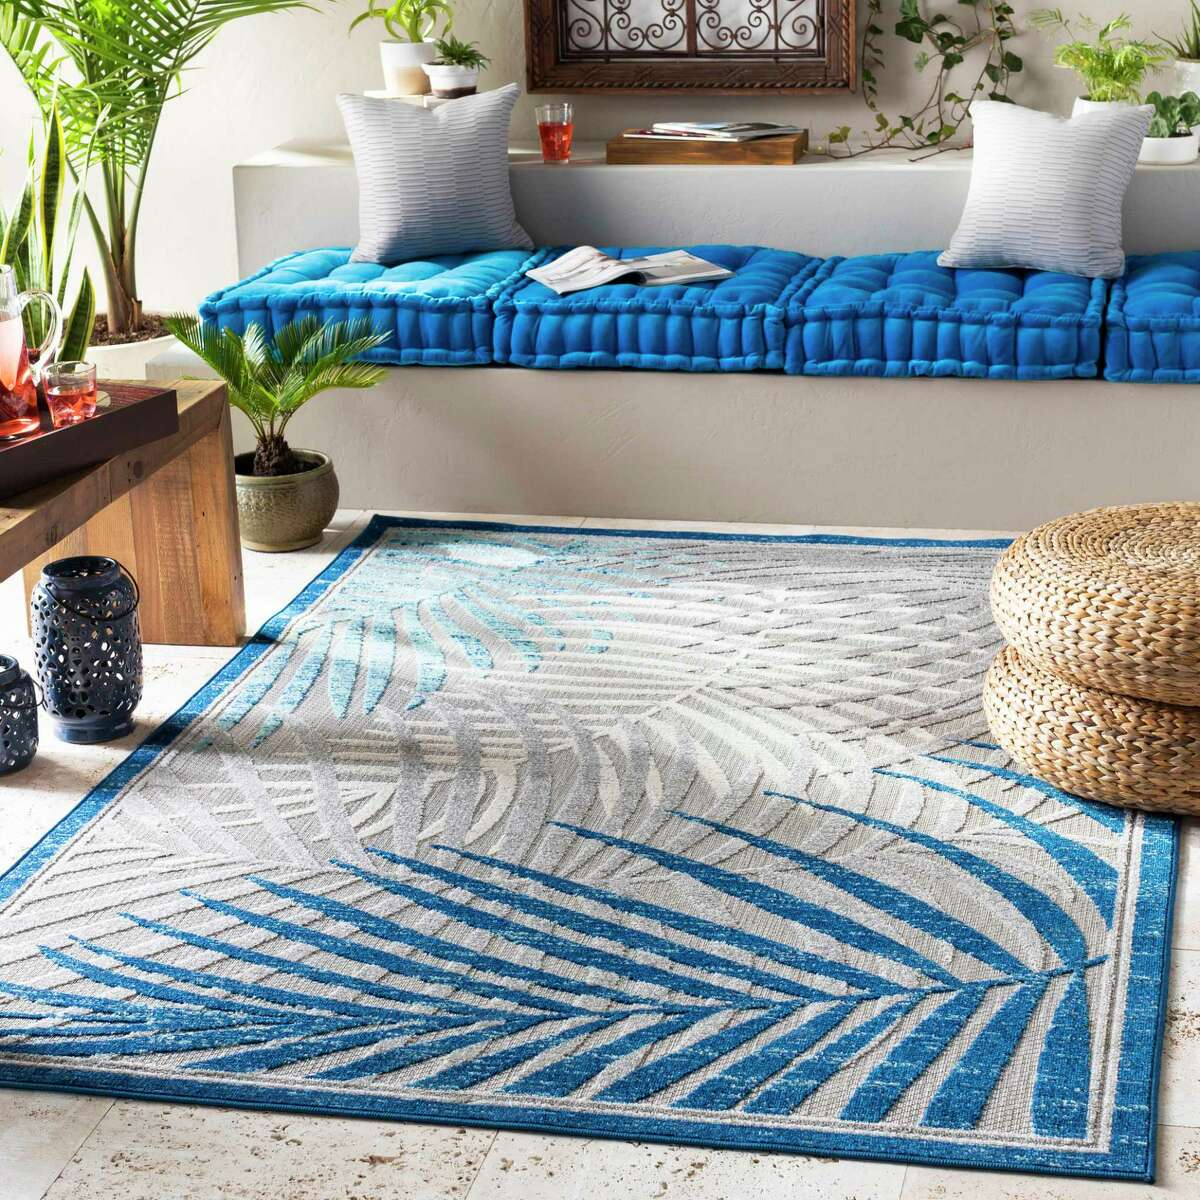 Surya's Big Sur rug ($160 for a 5'x8') has a tropical style. It was part of new collections shown at the Fall 2019 High Point Market.